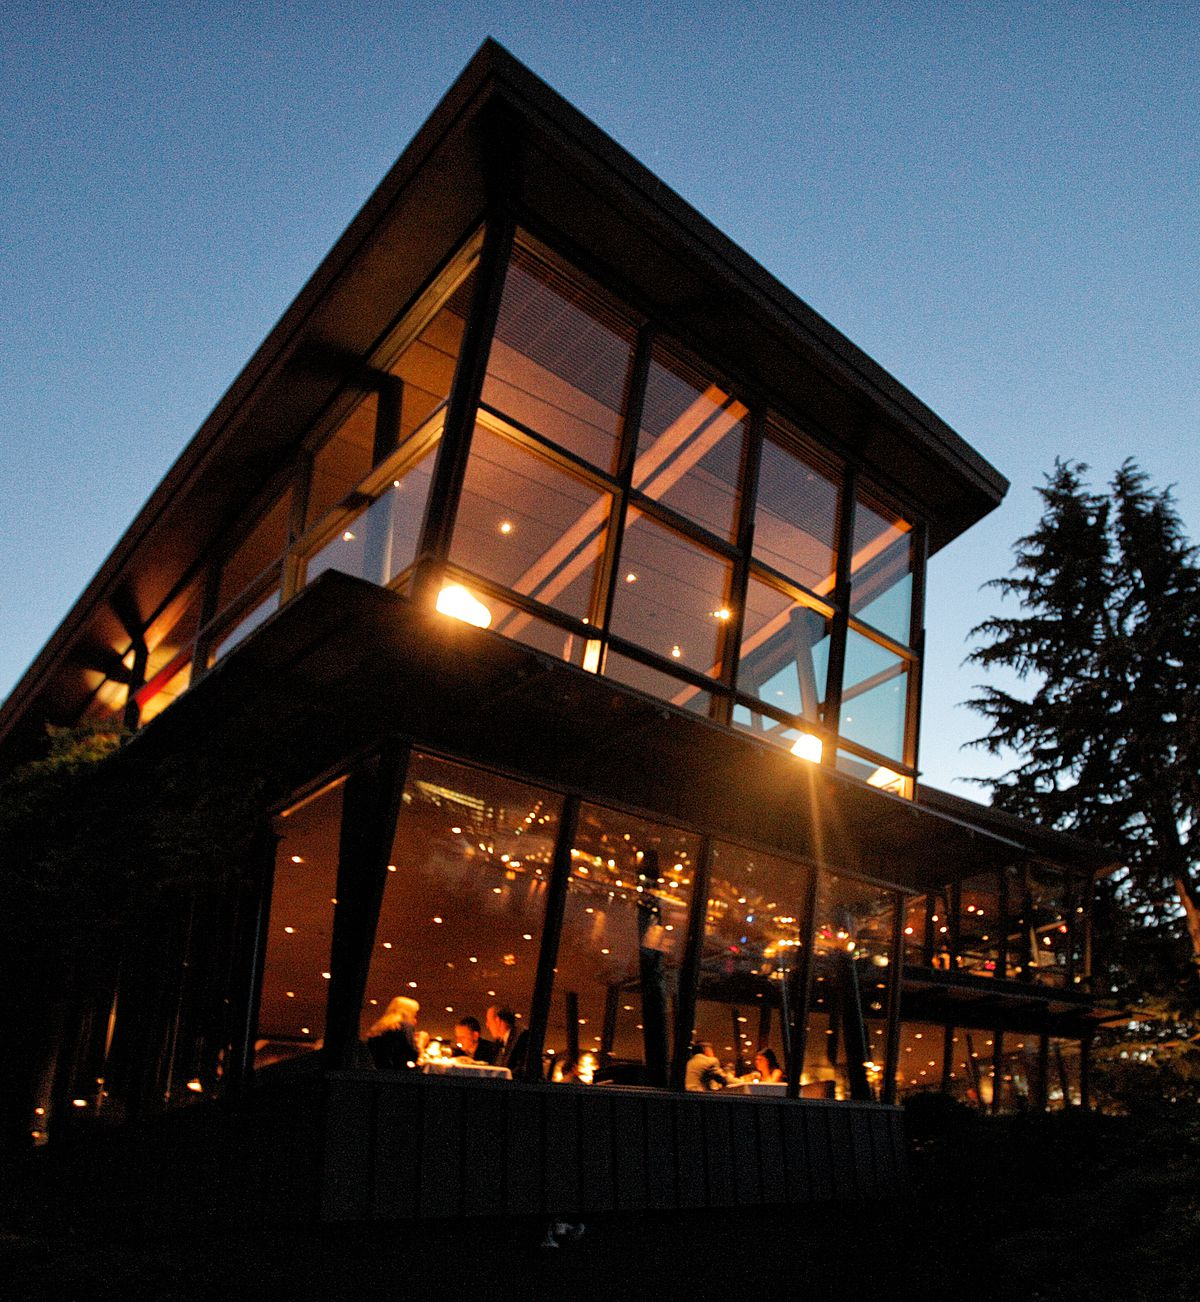 The exterior of Canlis restaurant at night with the dining room lit up